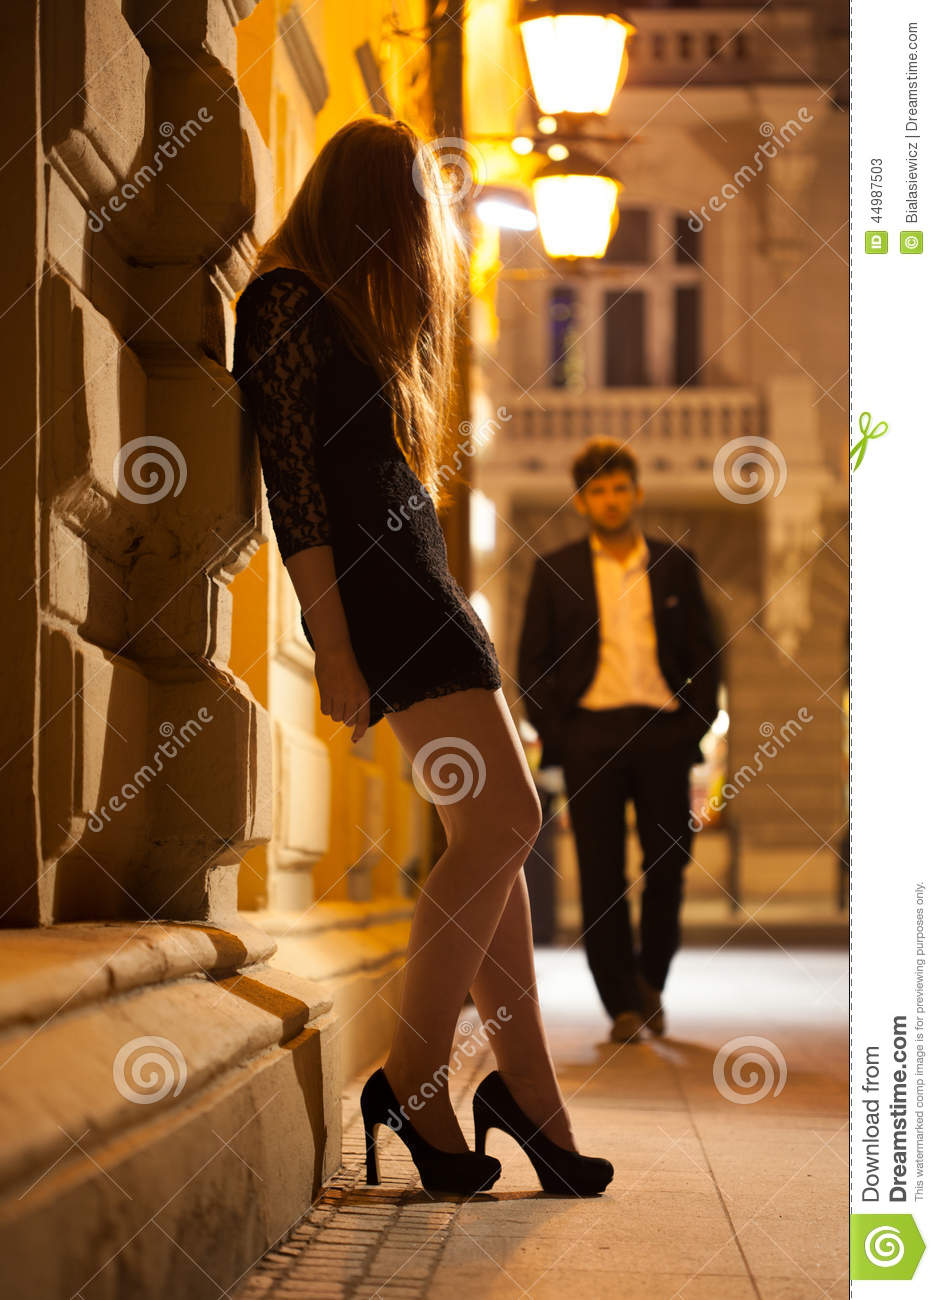 Prostitute Waiting For Client Stock Photo Image 44987503